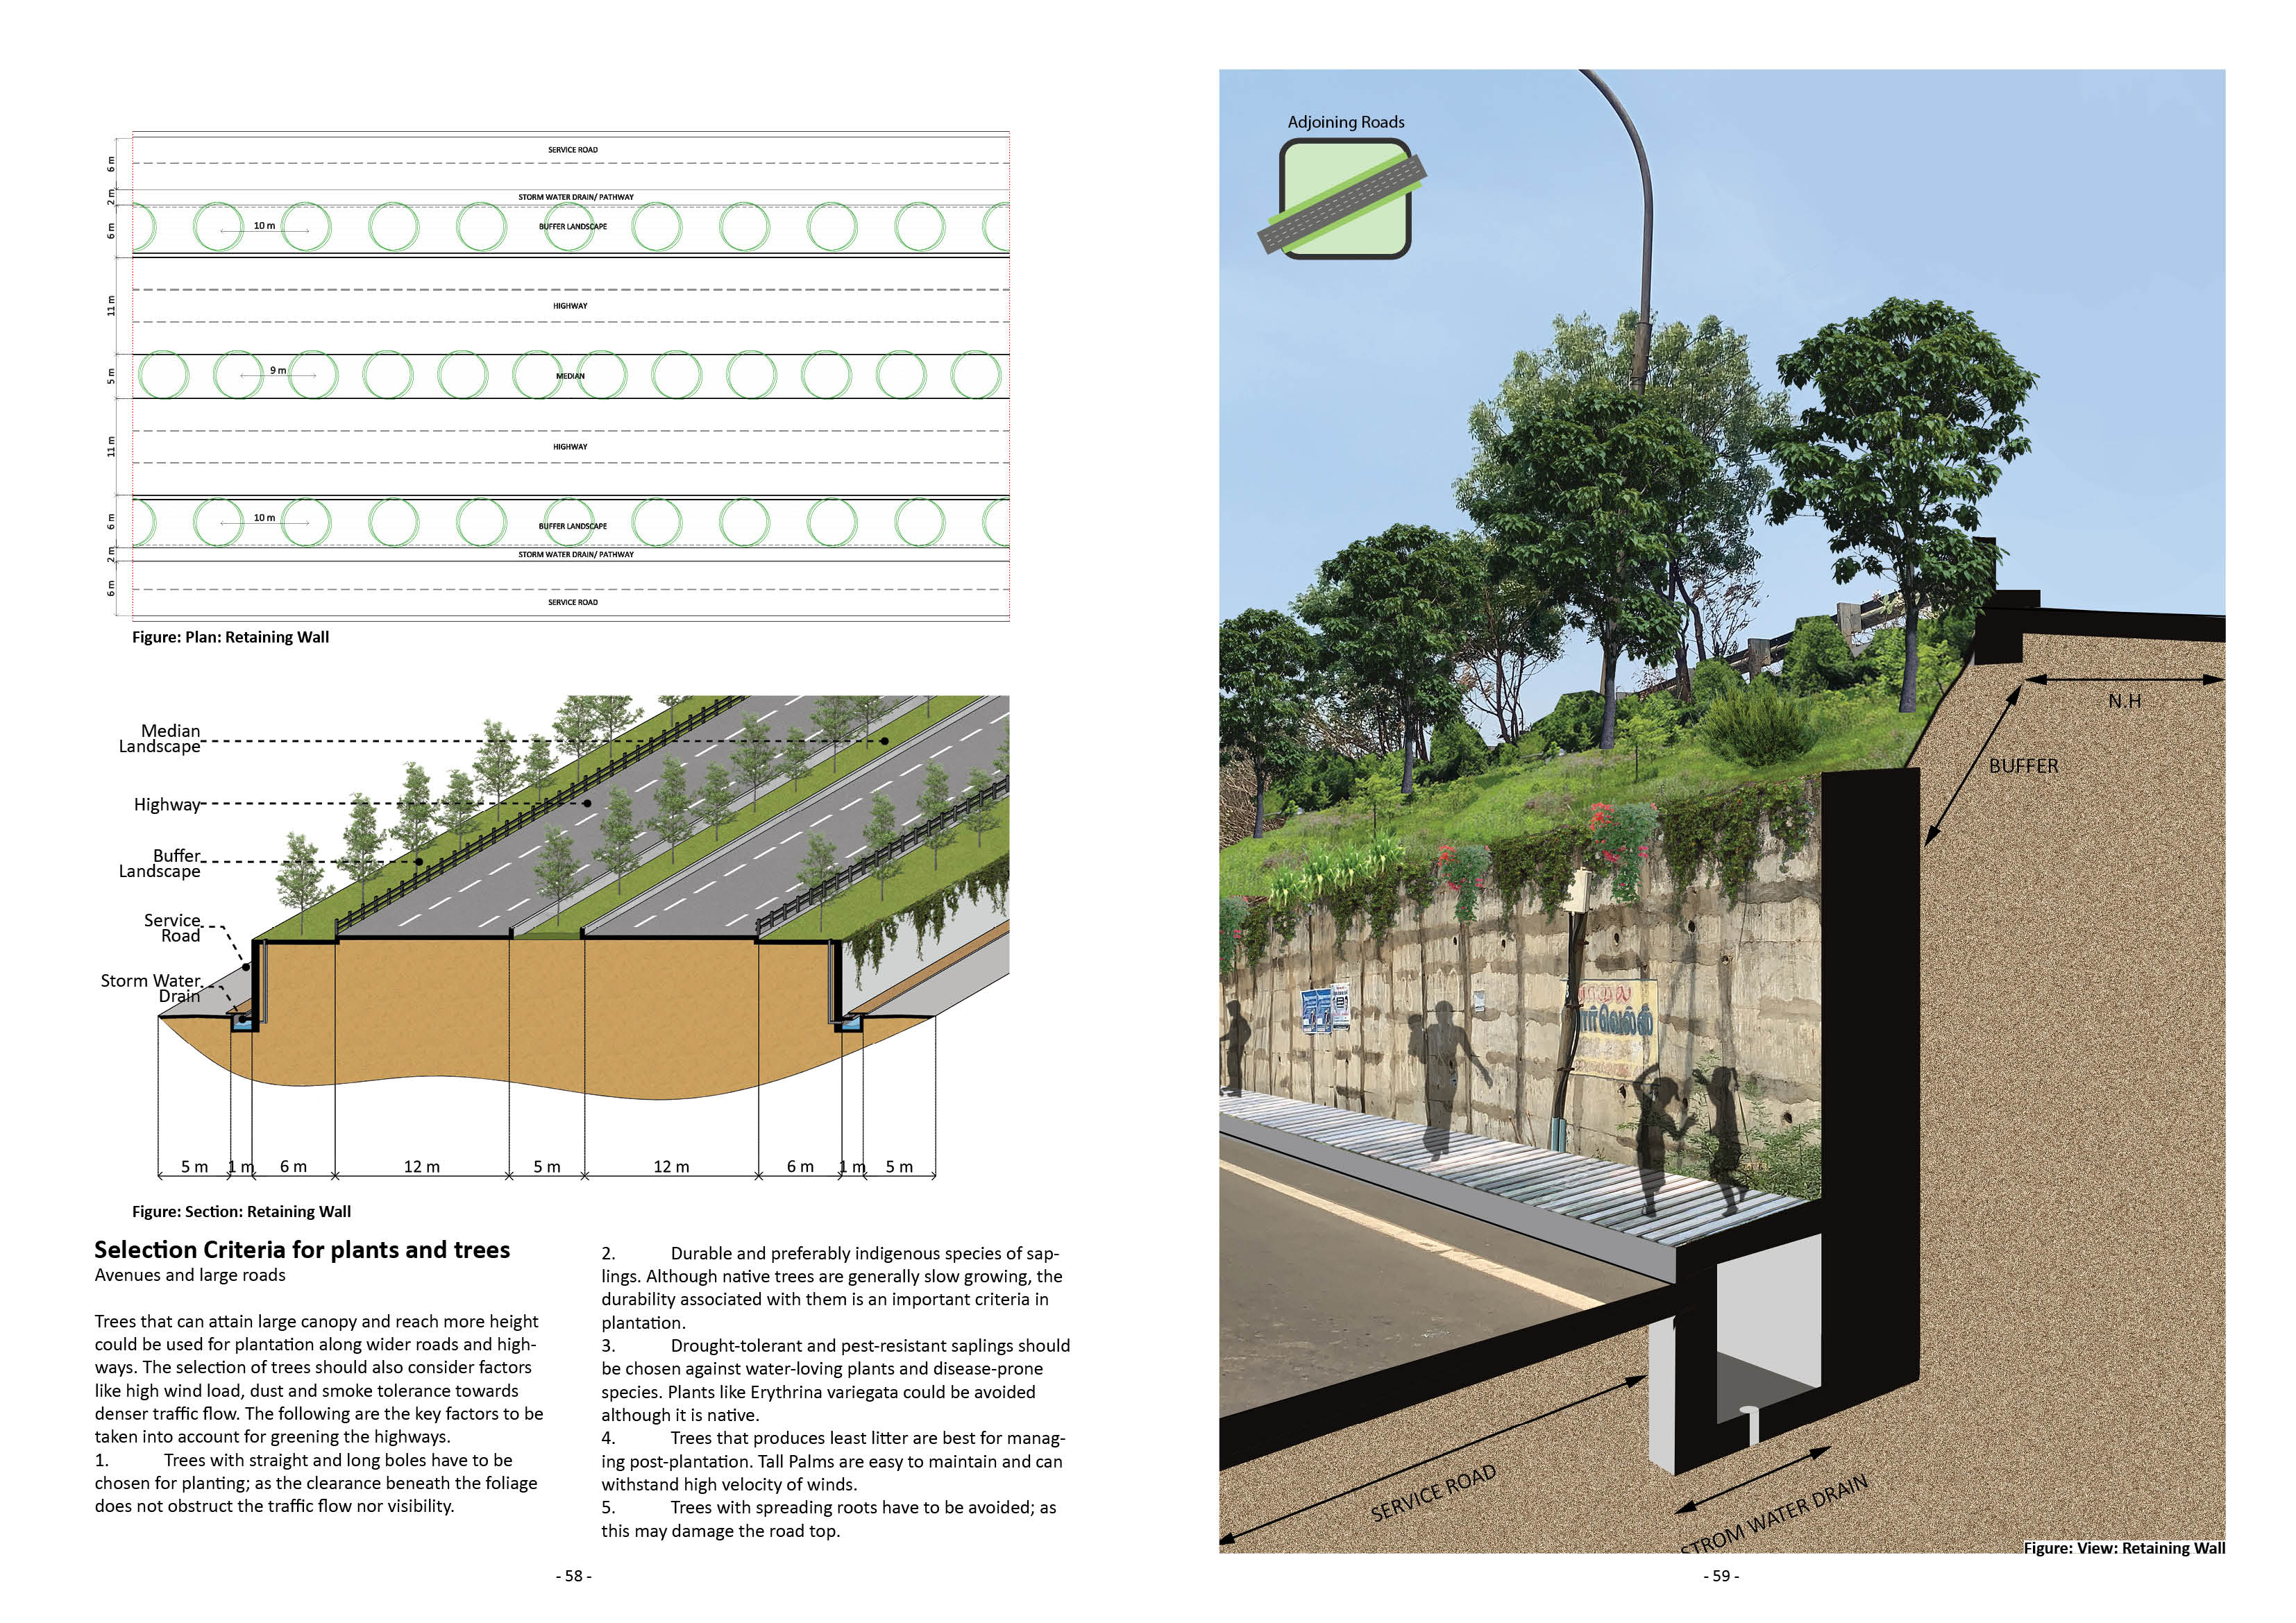 the buffer peripheries on the retaining wall